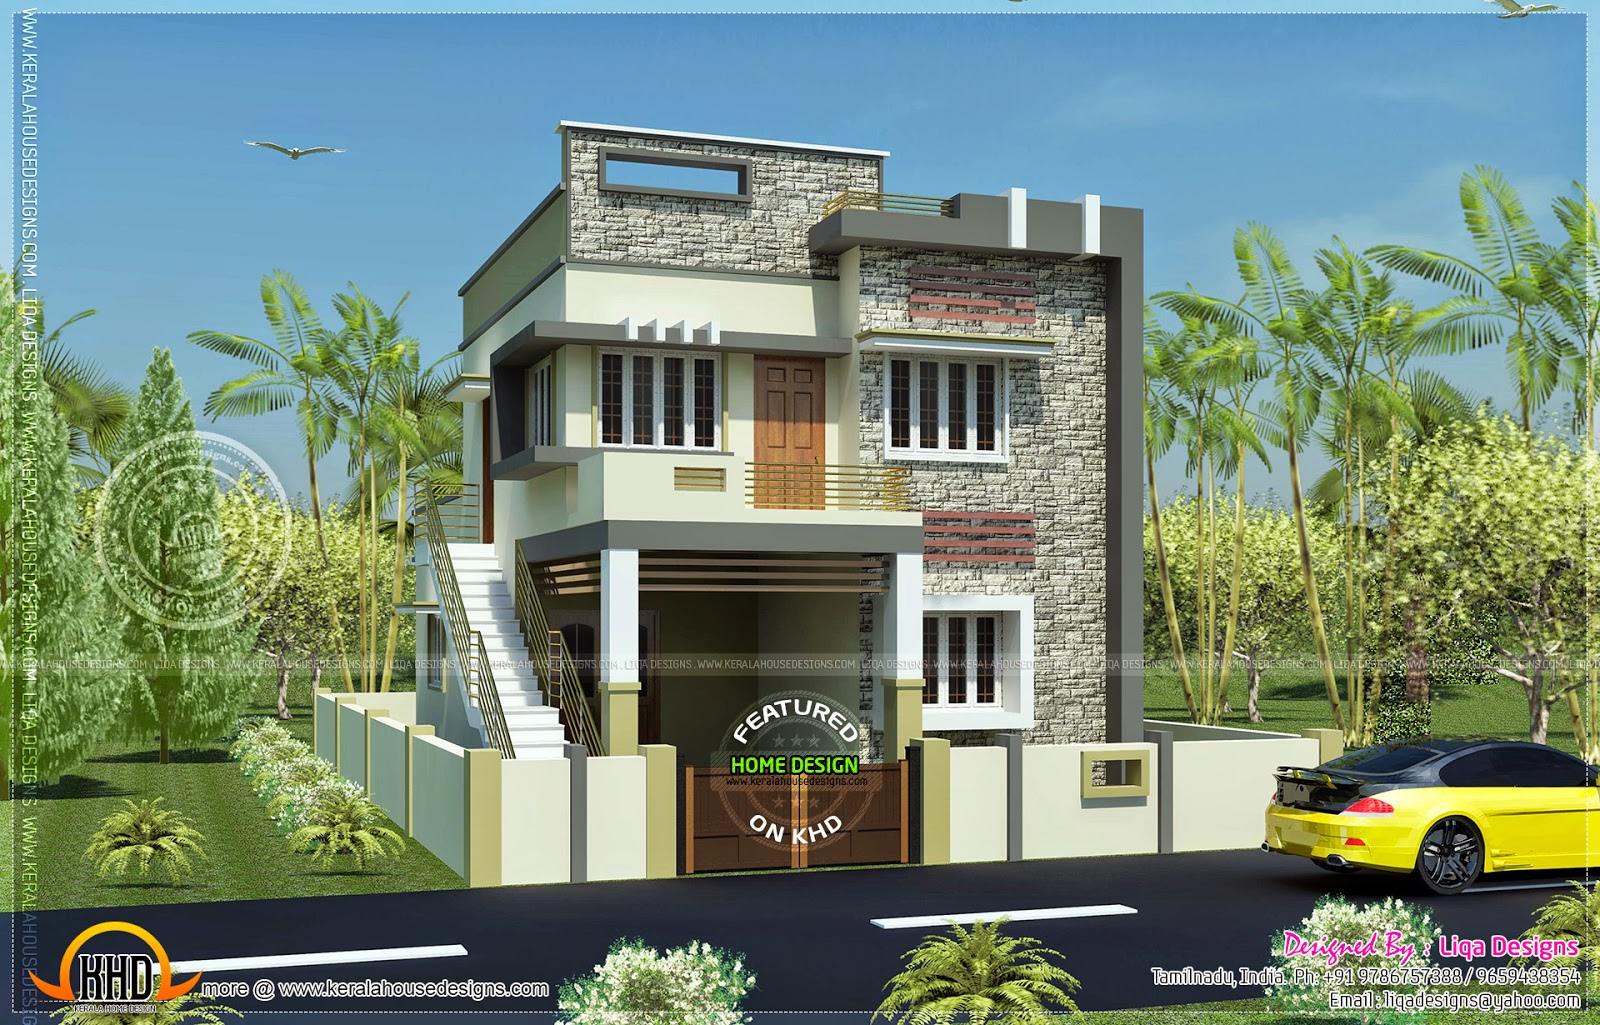 1289 sq ft 4 bedroom modern tamil house design kerala for Small two floor house